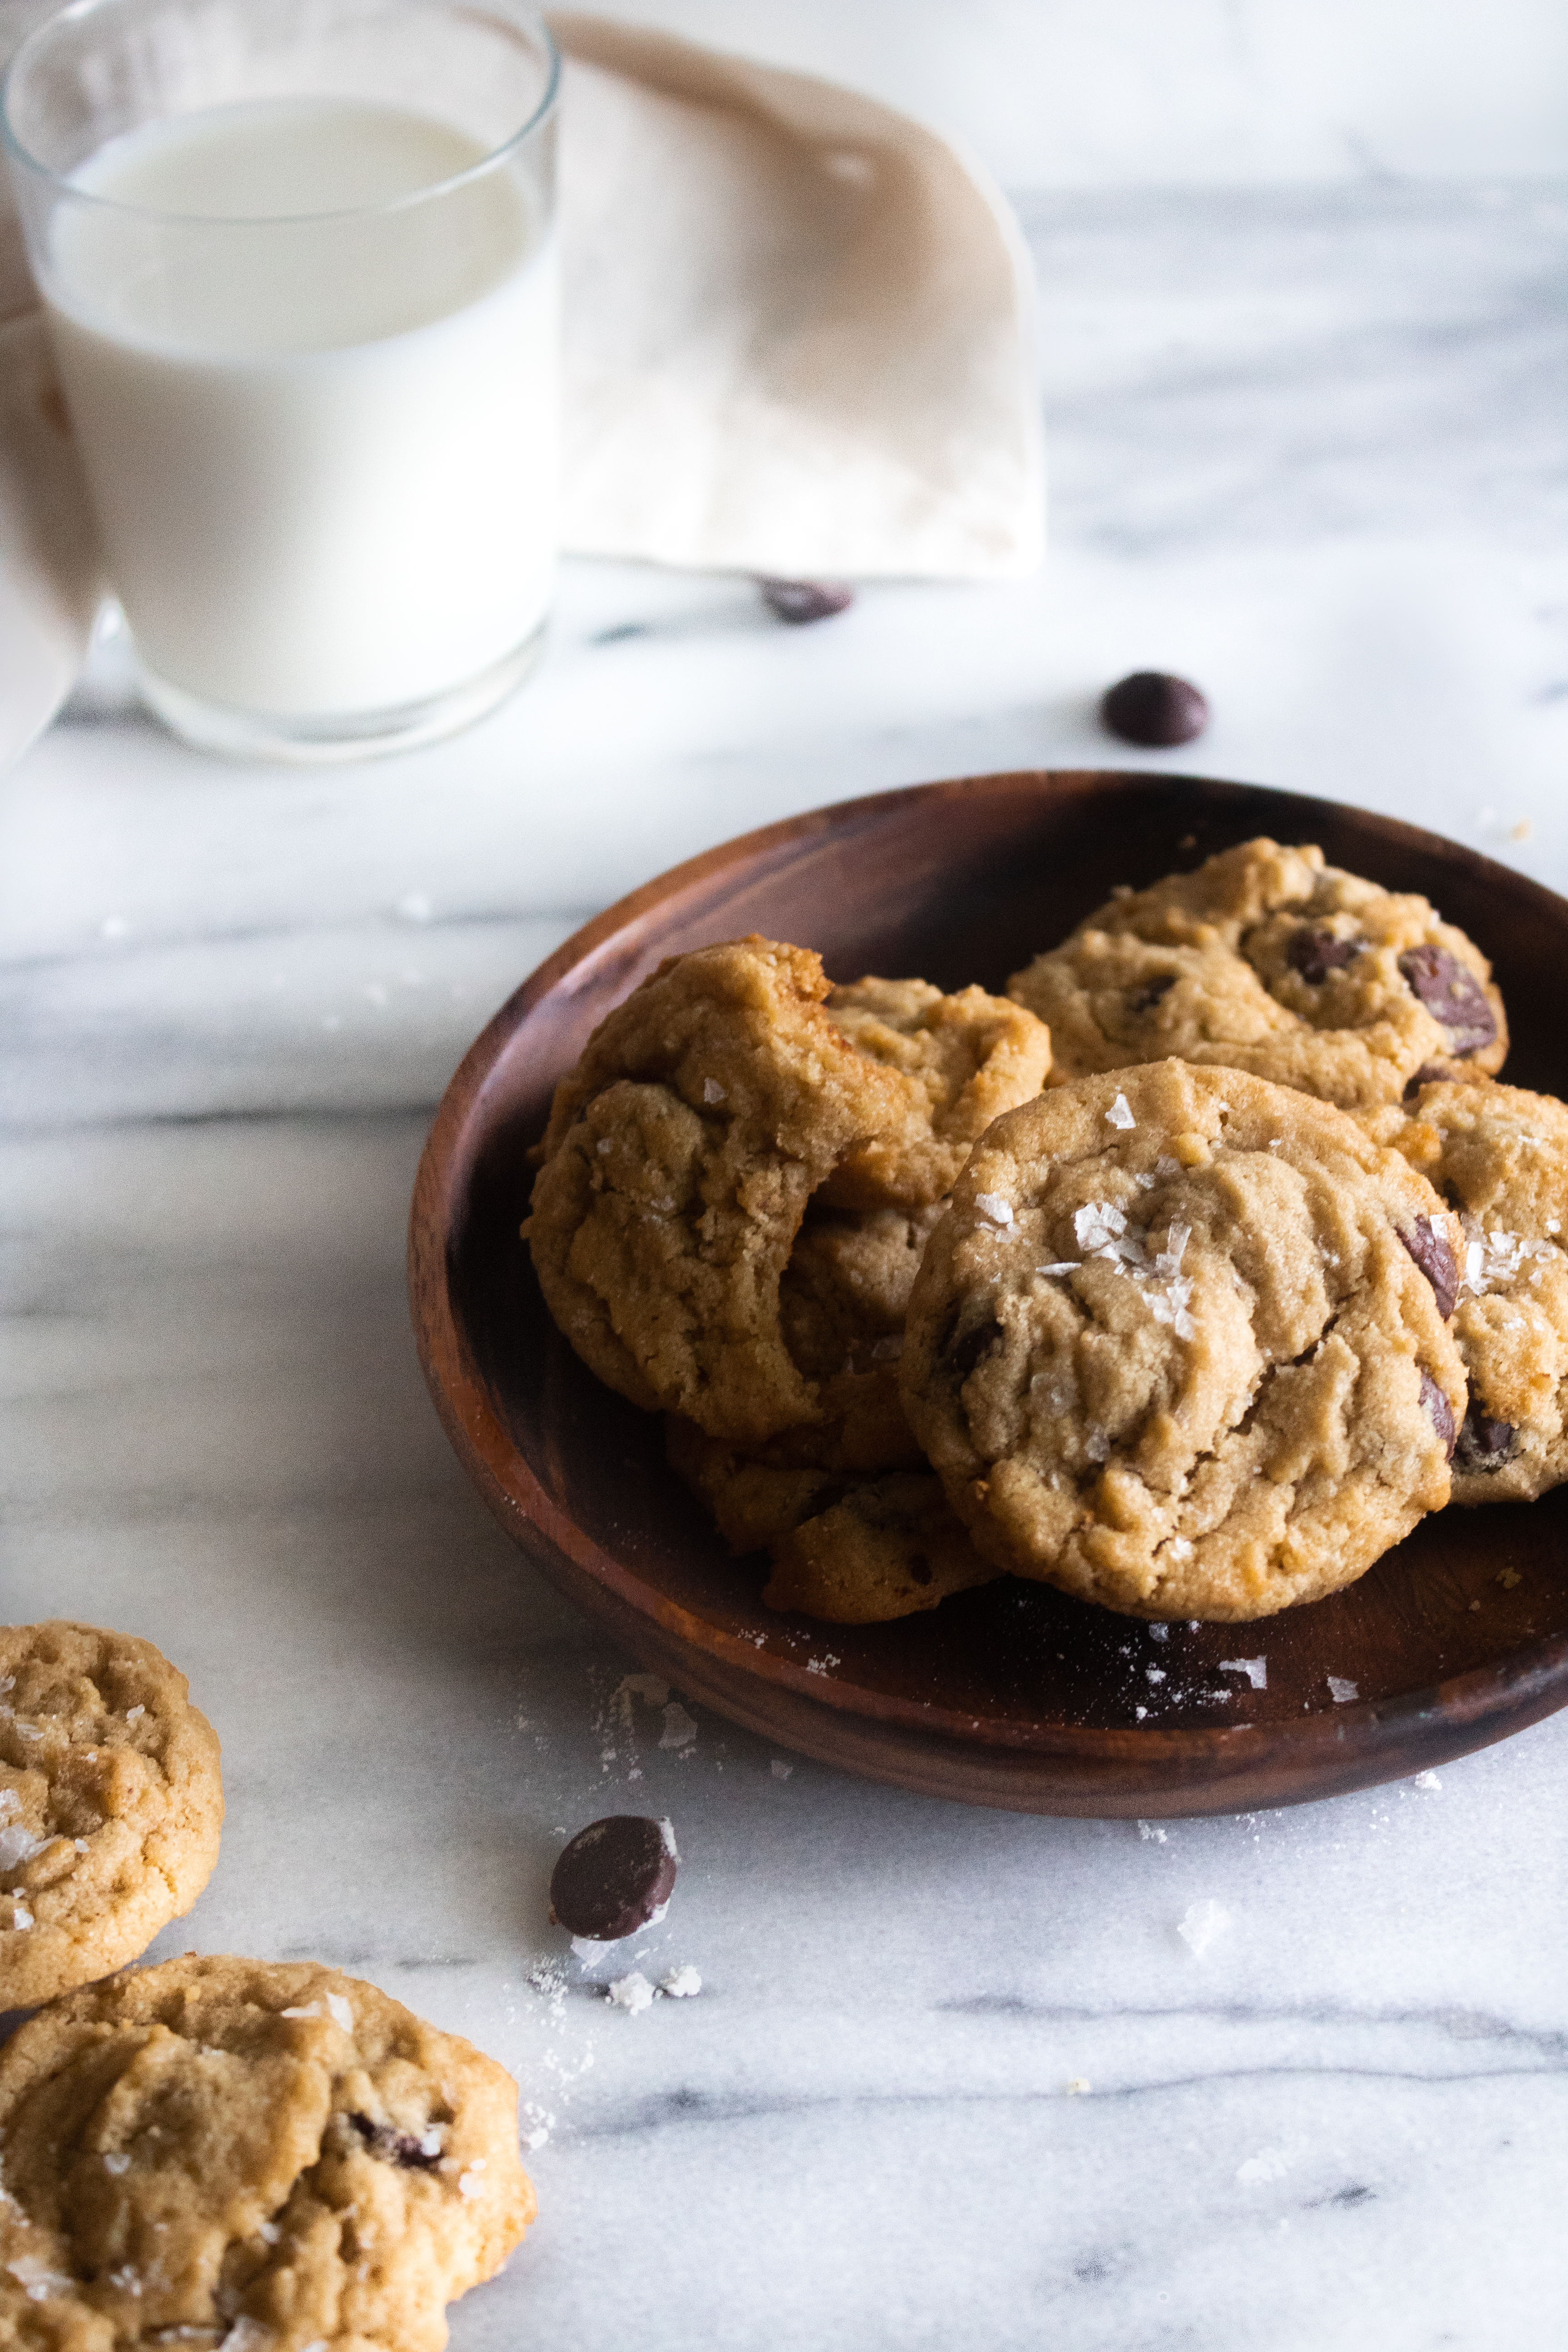 tahini chocolate chip cookies on a wooden plate with a glass of milk